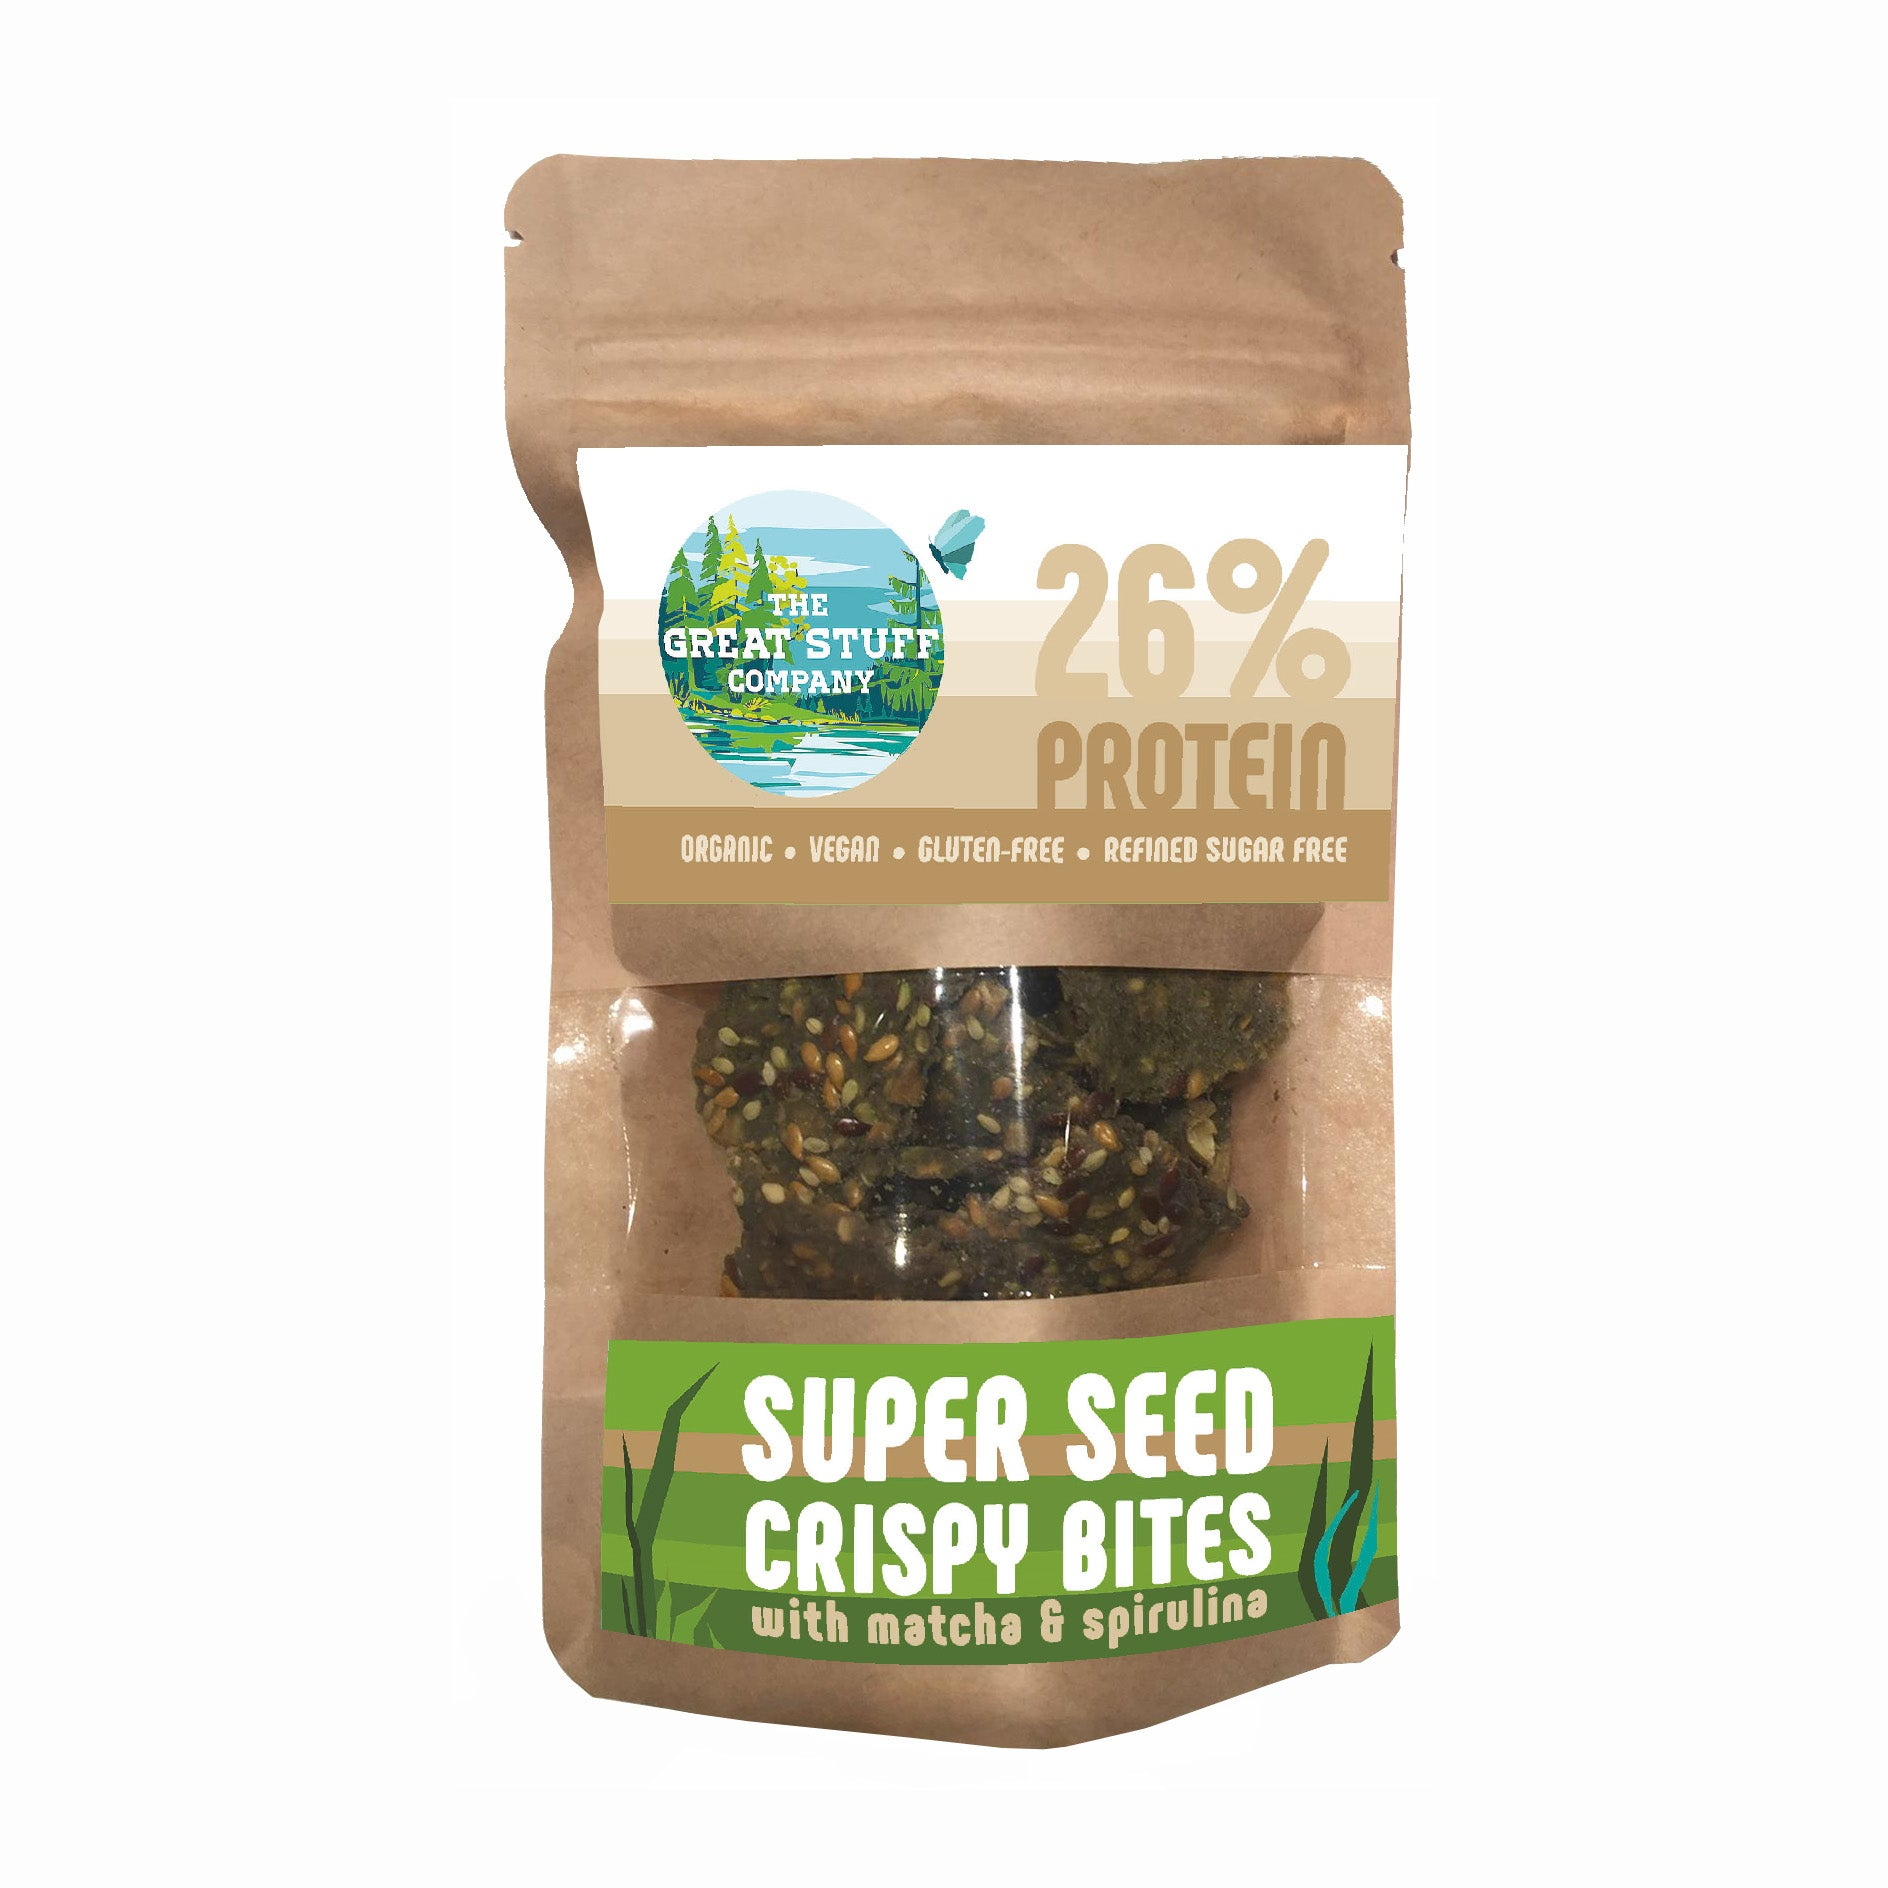 Super Seed Crispy Bites with Matcha & Spirulina - 10 bags - free shipping